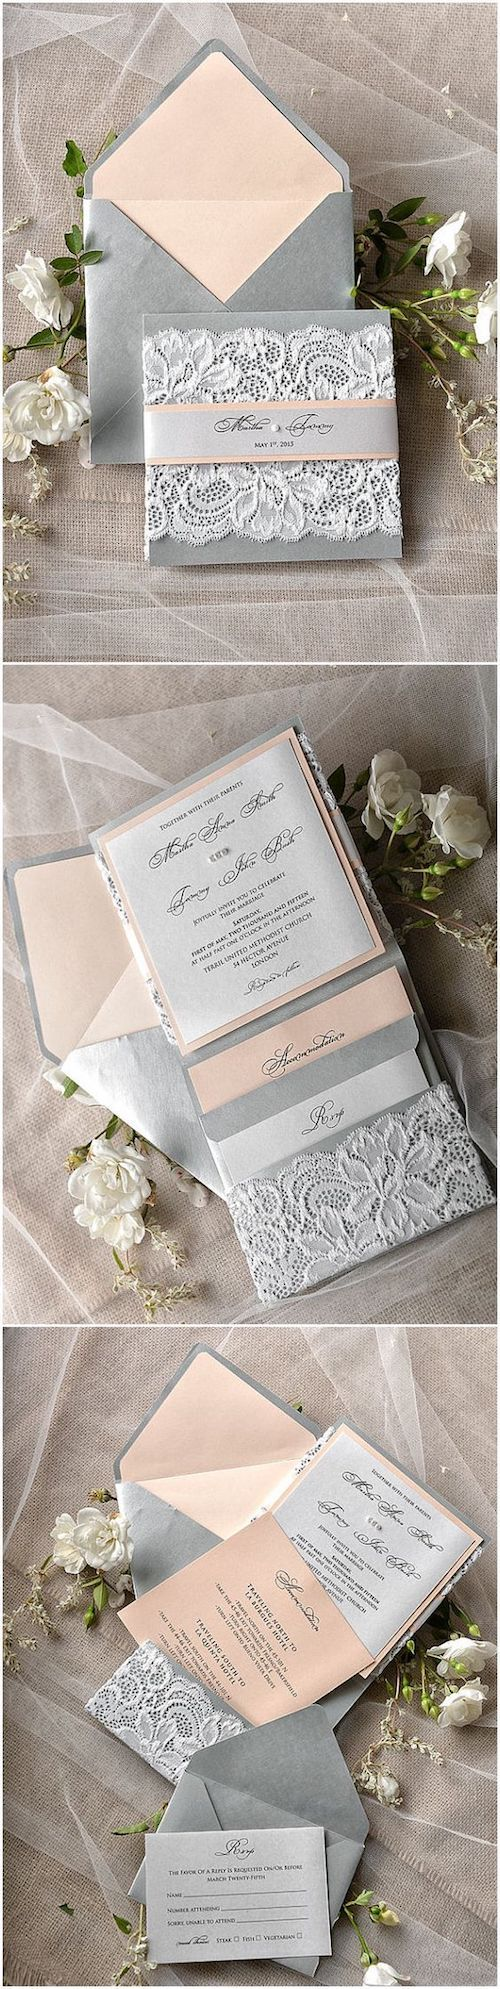 You can easily add one more layer to this set and have two languages, but how much more will it cost you? Discover all about bilingual wedding invitations on the blog! Peach and grey rustic vintage lace wedding invitations.